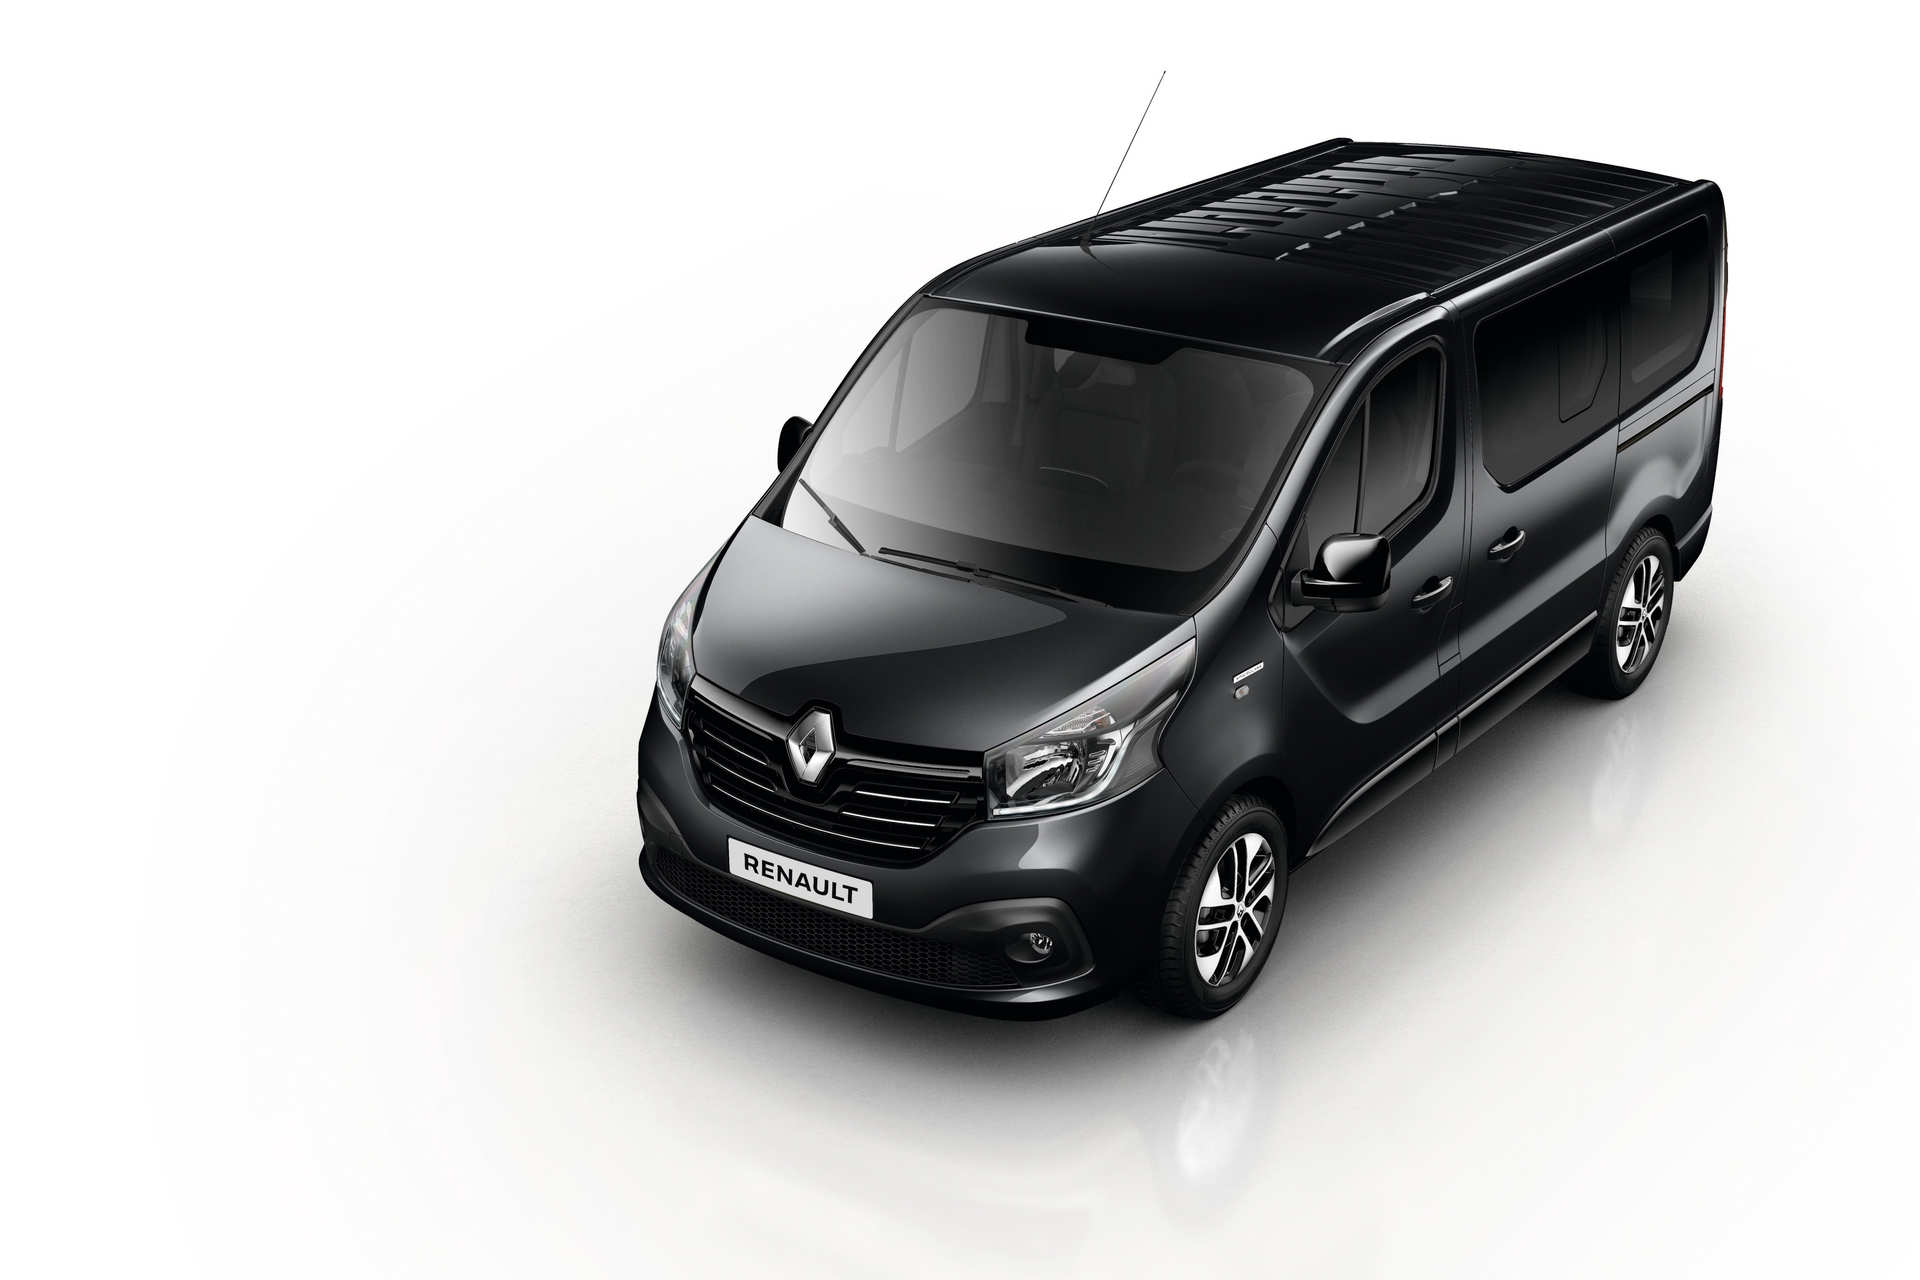 renault-trafic-spaceclass